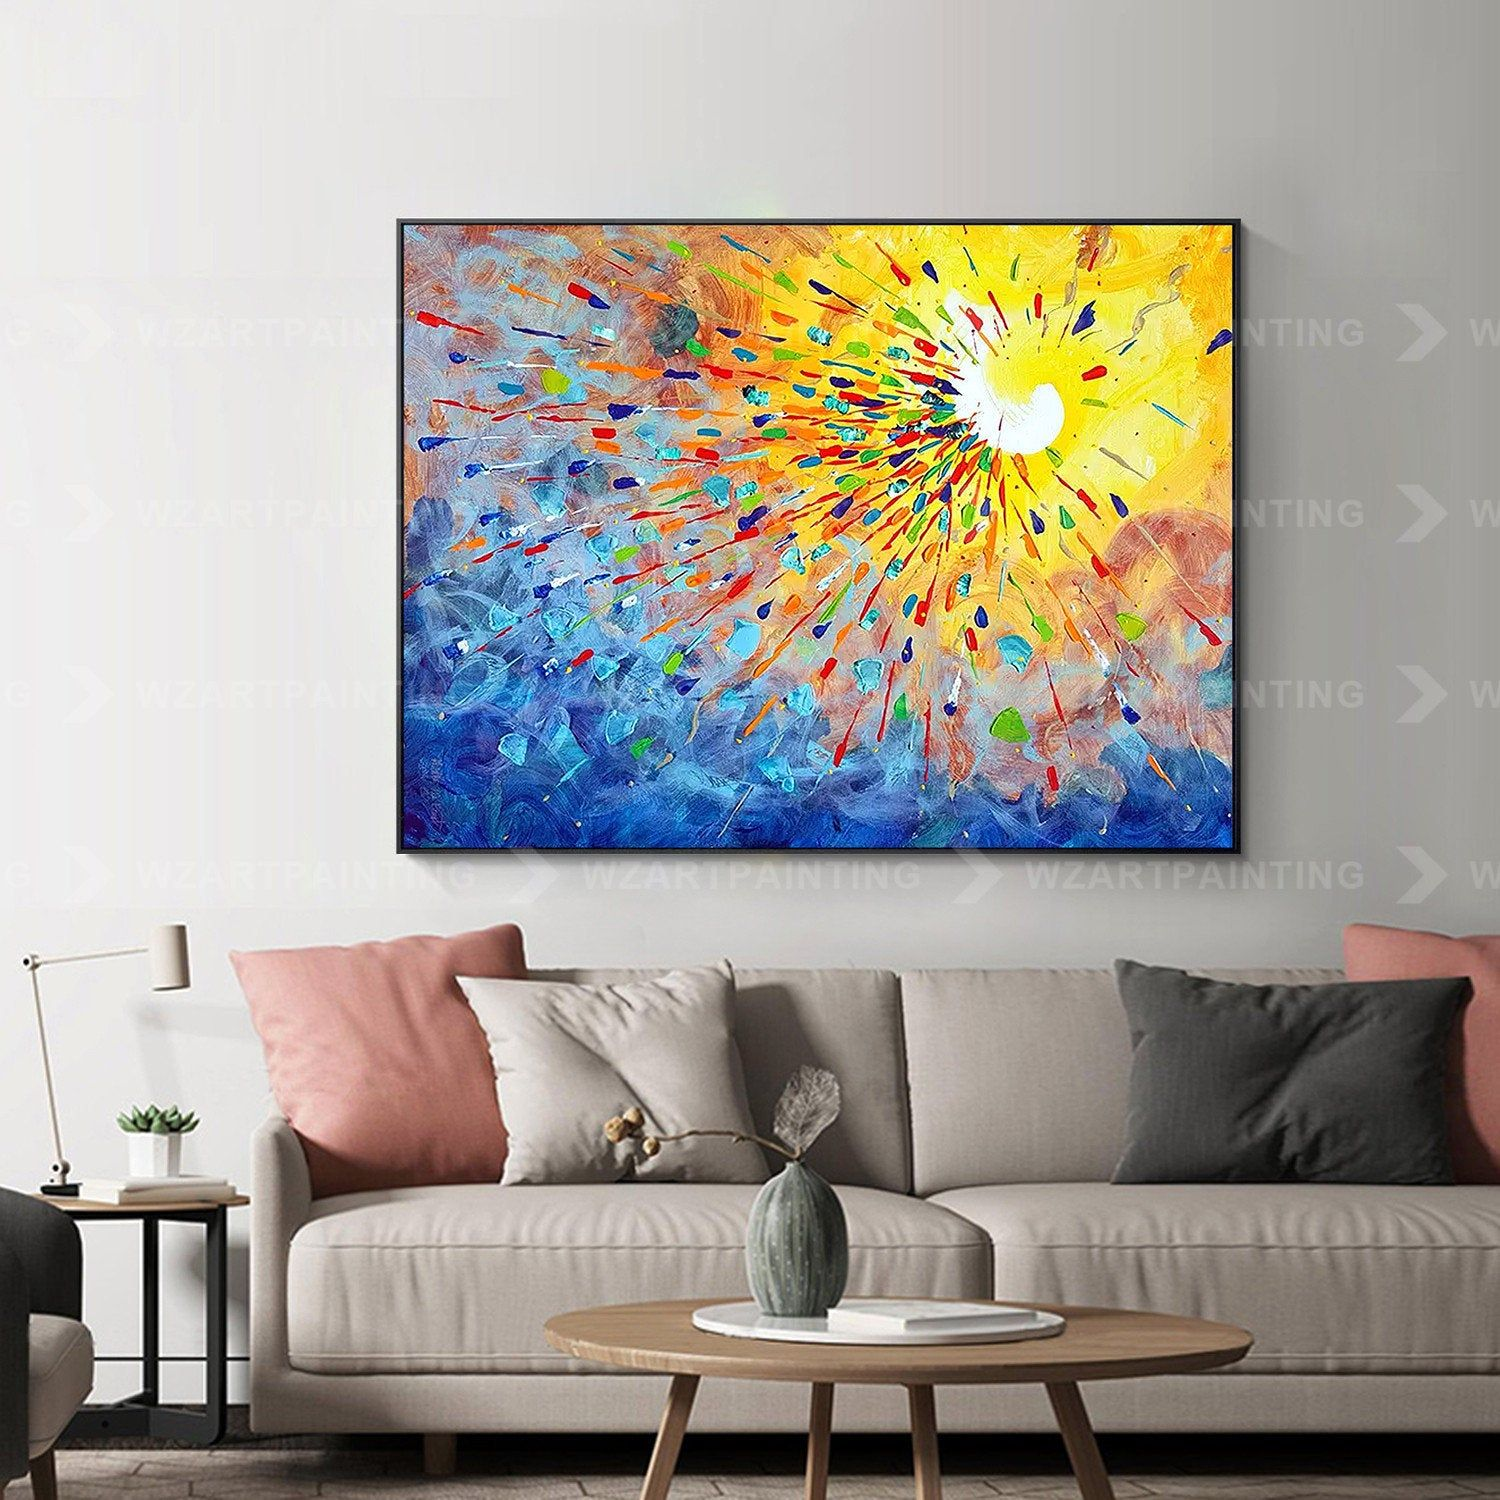 Framed Wall Art Yellow Blue Red Abstract Print On Canvas Painting Wall Art Pictures Art Framed Quadros Caudros Cuadros Abstractos Quadro Abstracto Painting Cuadro Abstractos